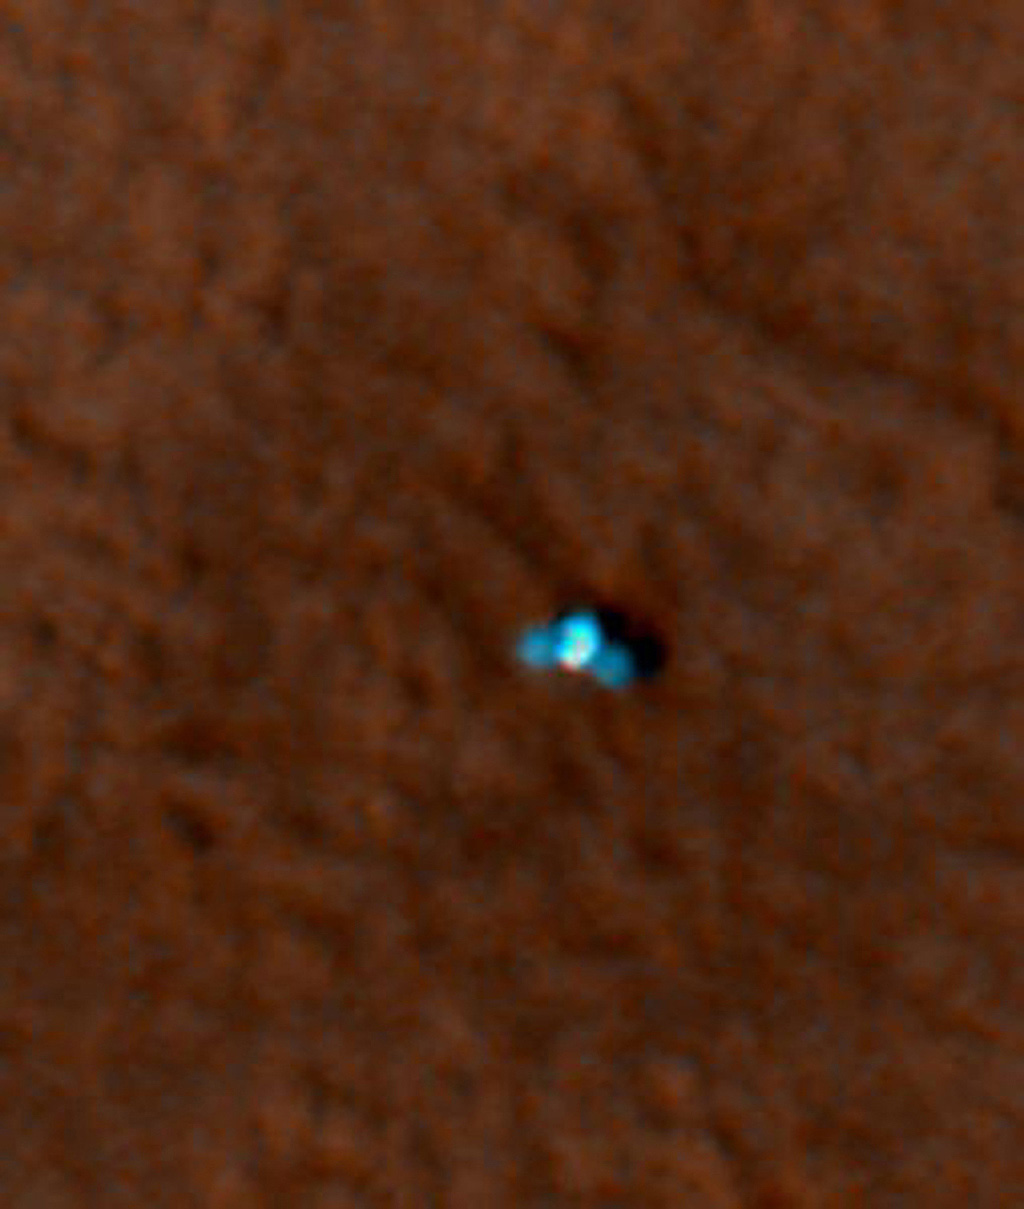 Space Images | Color Image of Phoenix Lander on Mars Surface